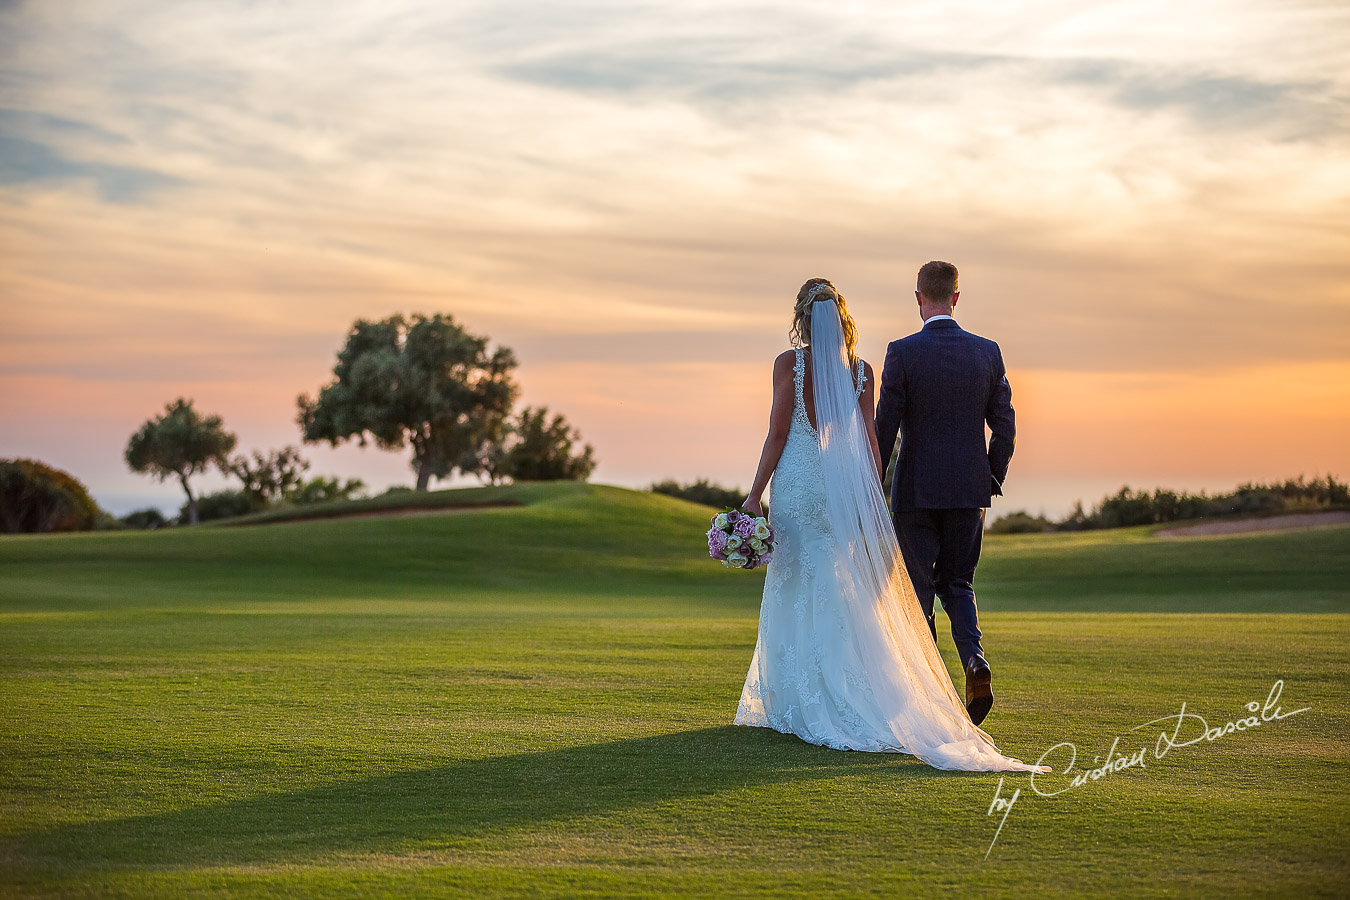 Sunset photoshoot moments captured by Cristian Dascalu at a wedding at The Aphrodite Hills Resort in Paphos, Cyprus.